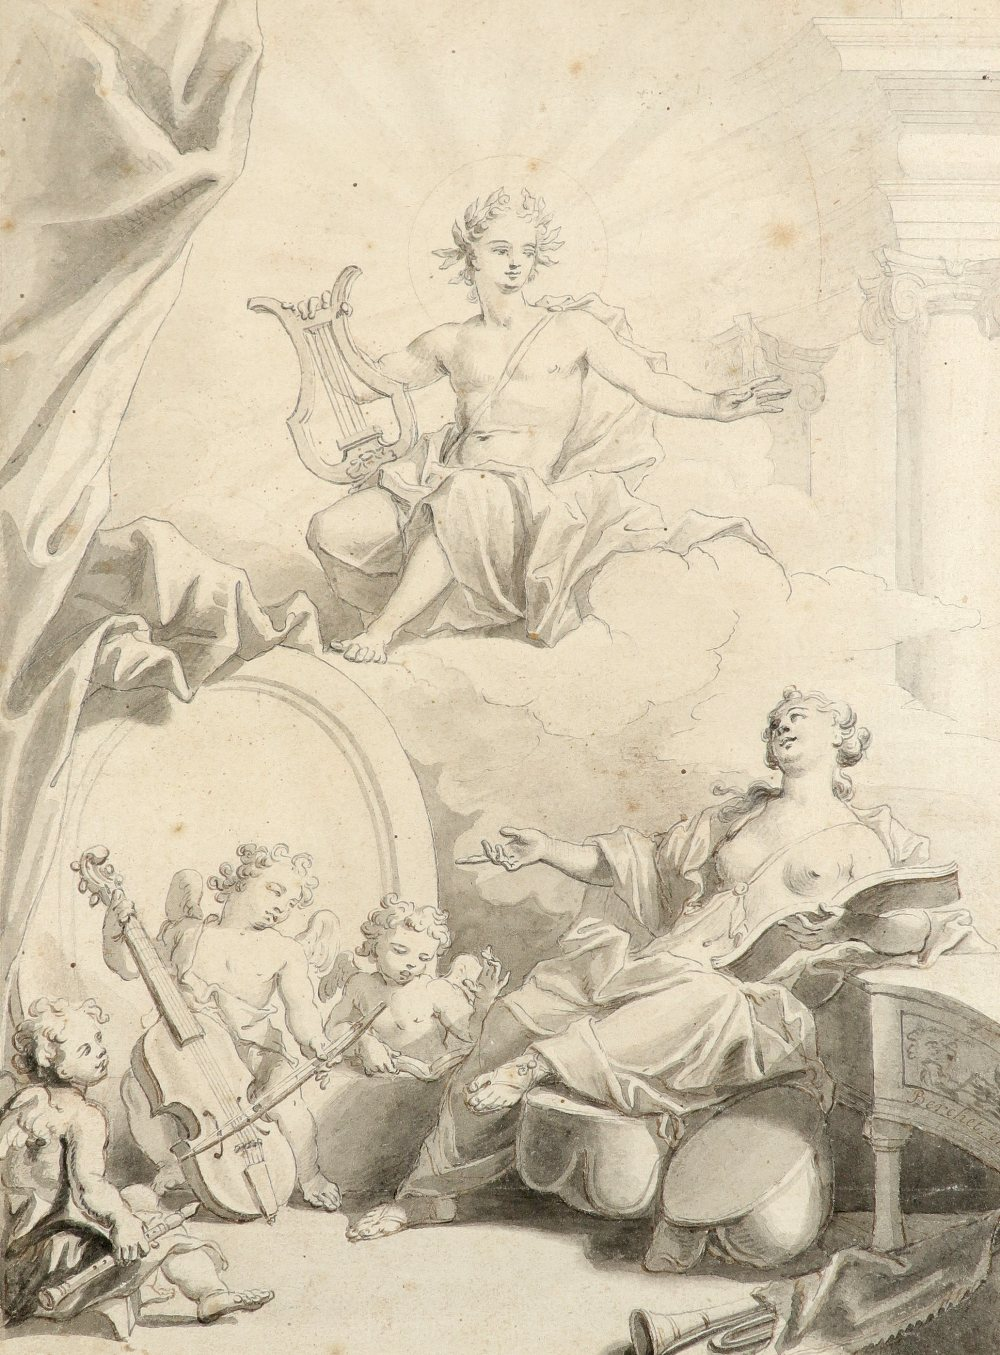 Pierre Berchet (French 1659-1719/20) Design for a frontispiece depicting Apollo, a muse and putti